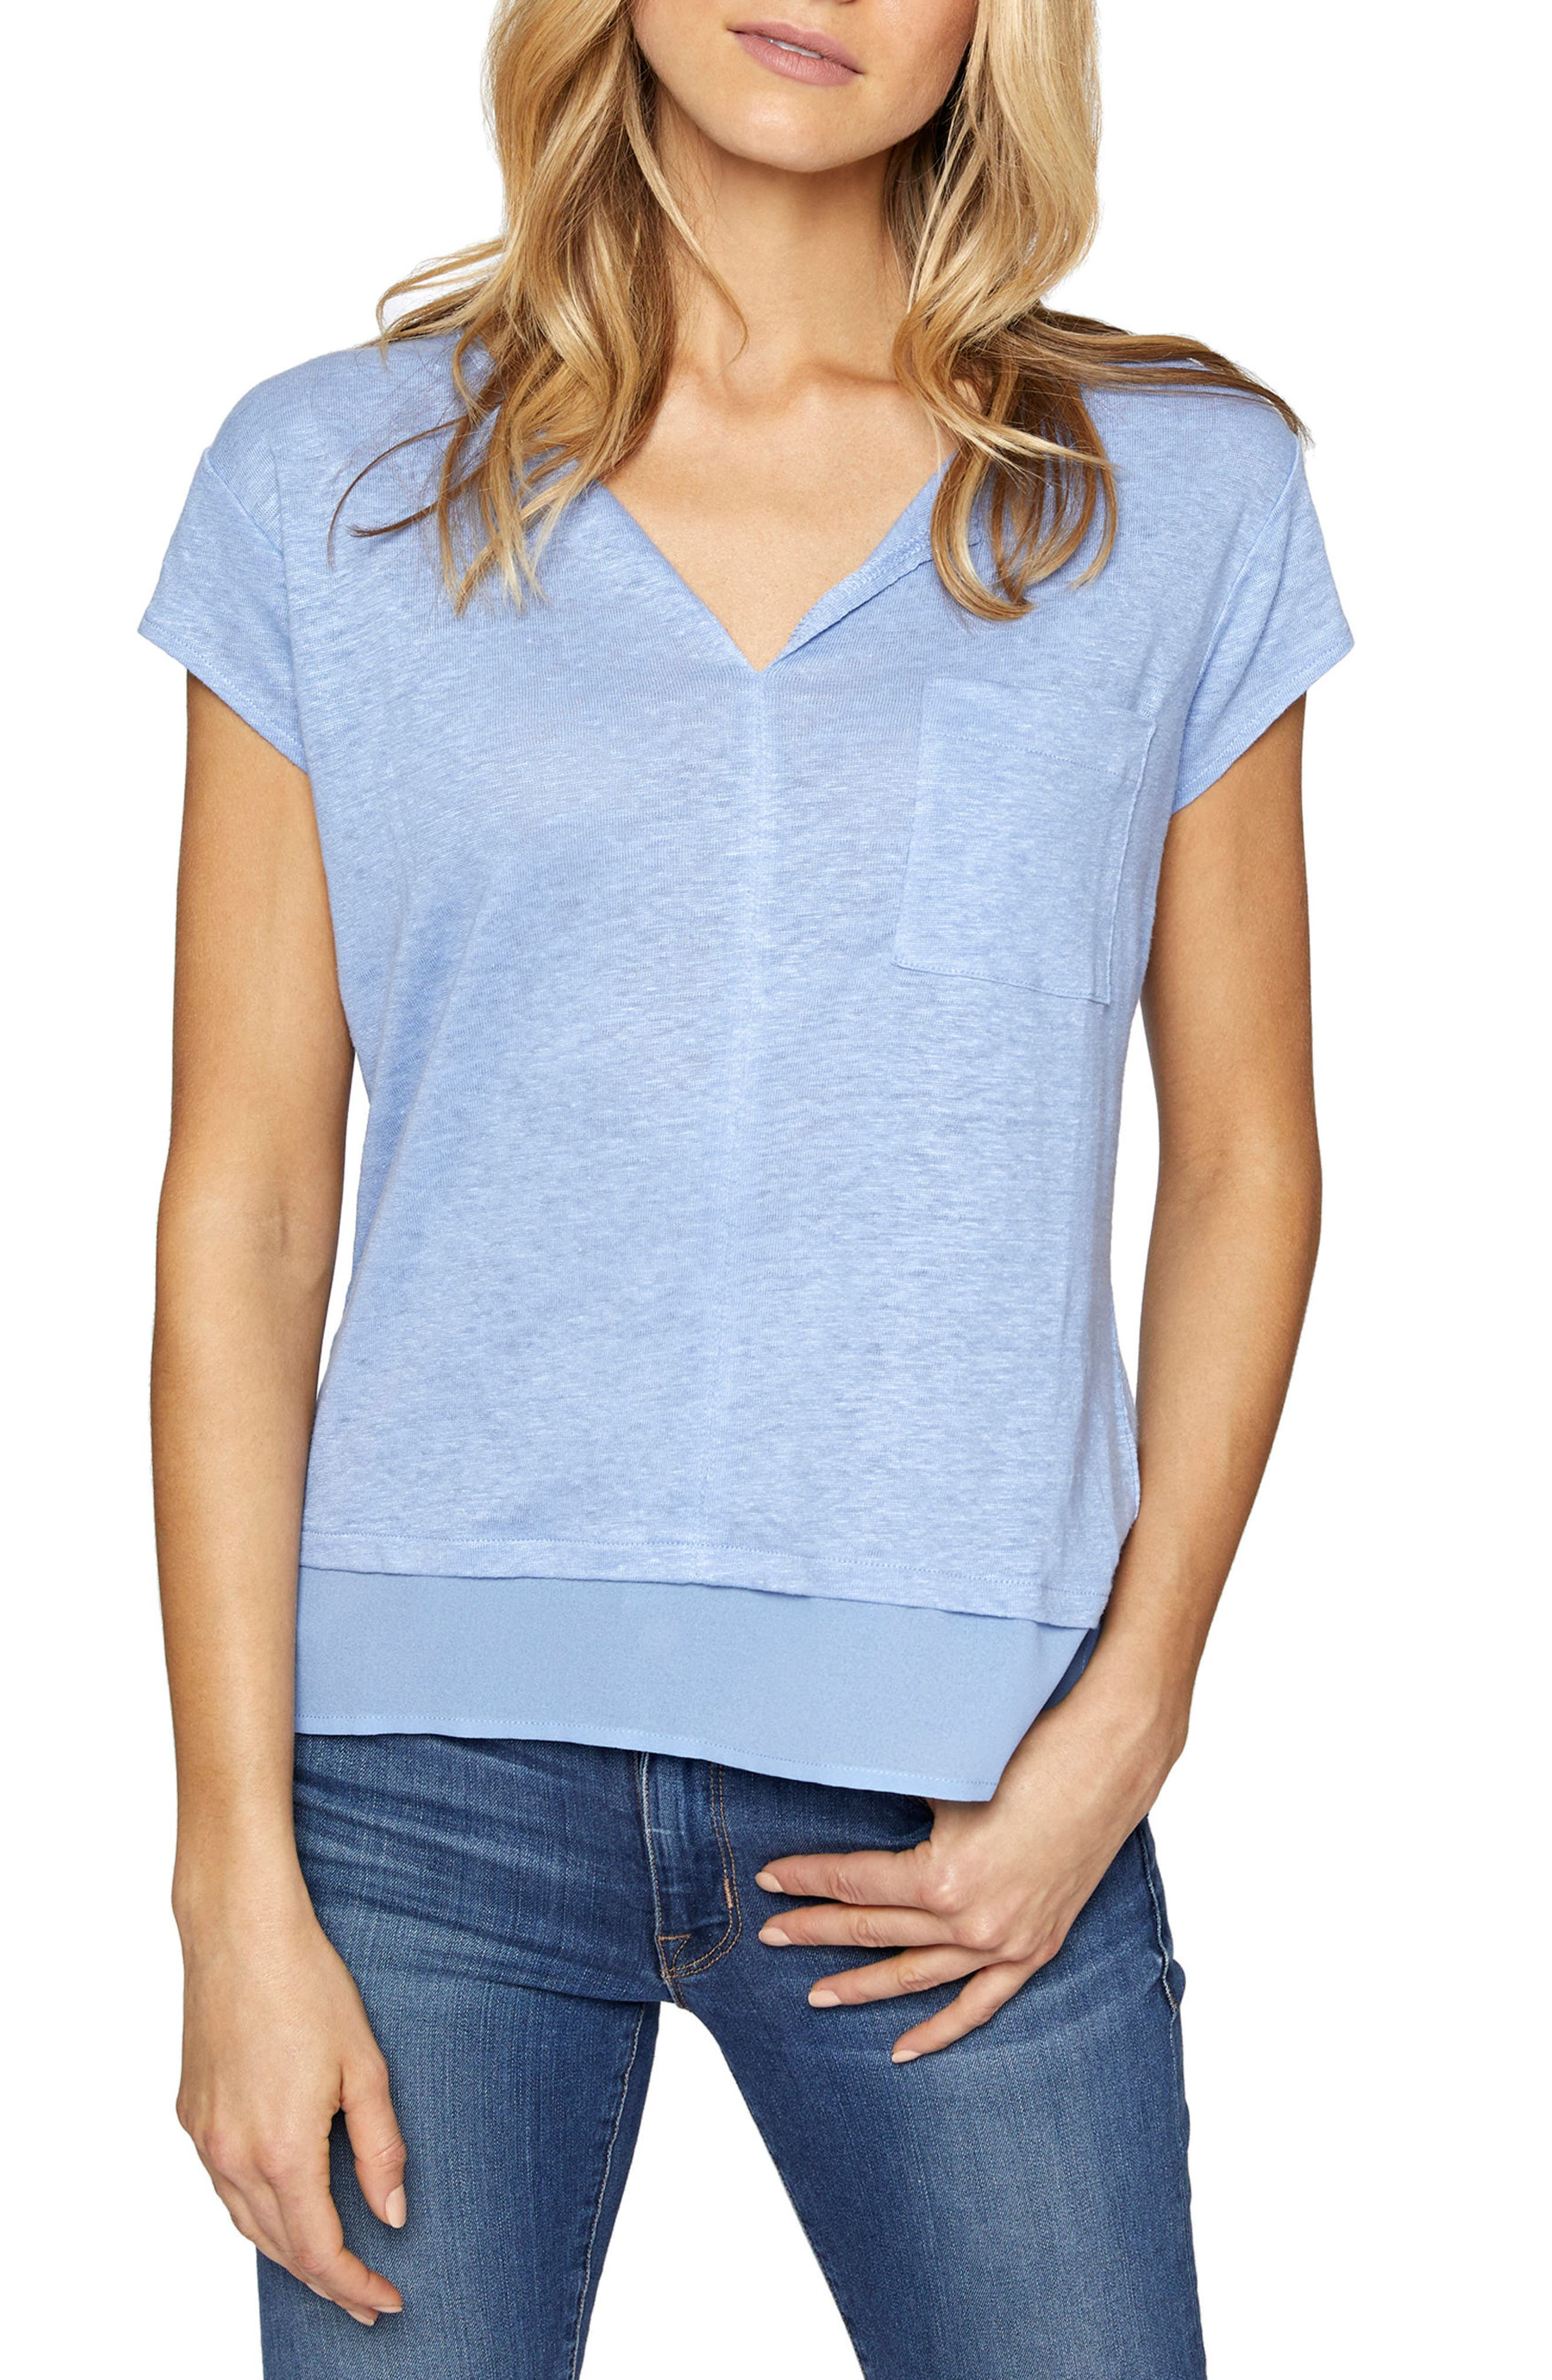 City Mix Layered Look Tee,                         Main,                         color, Icy Blue